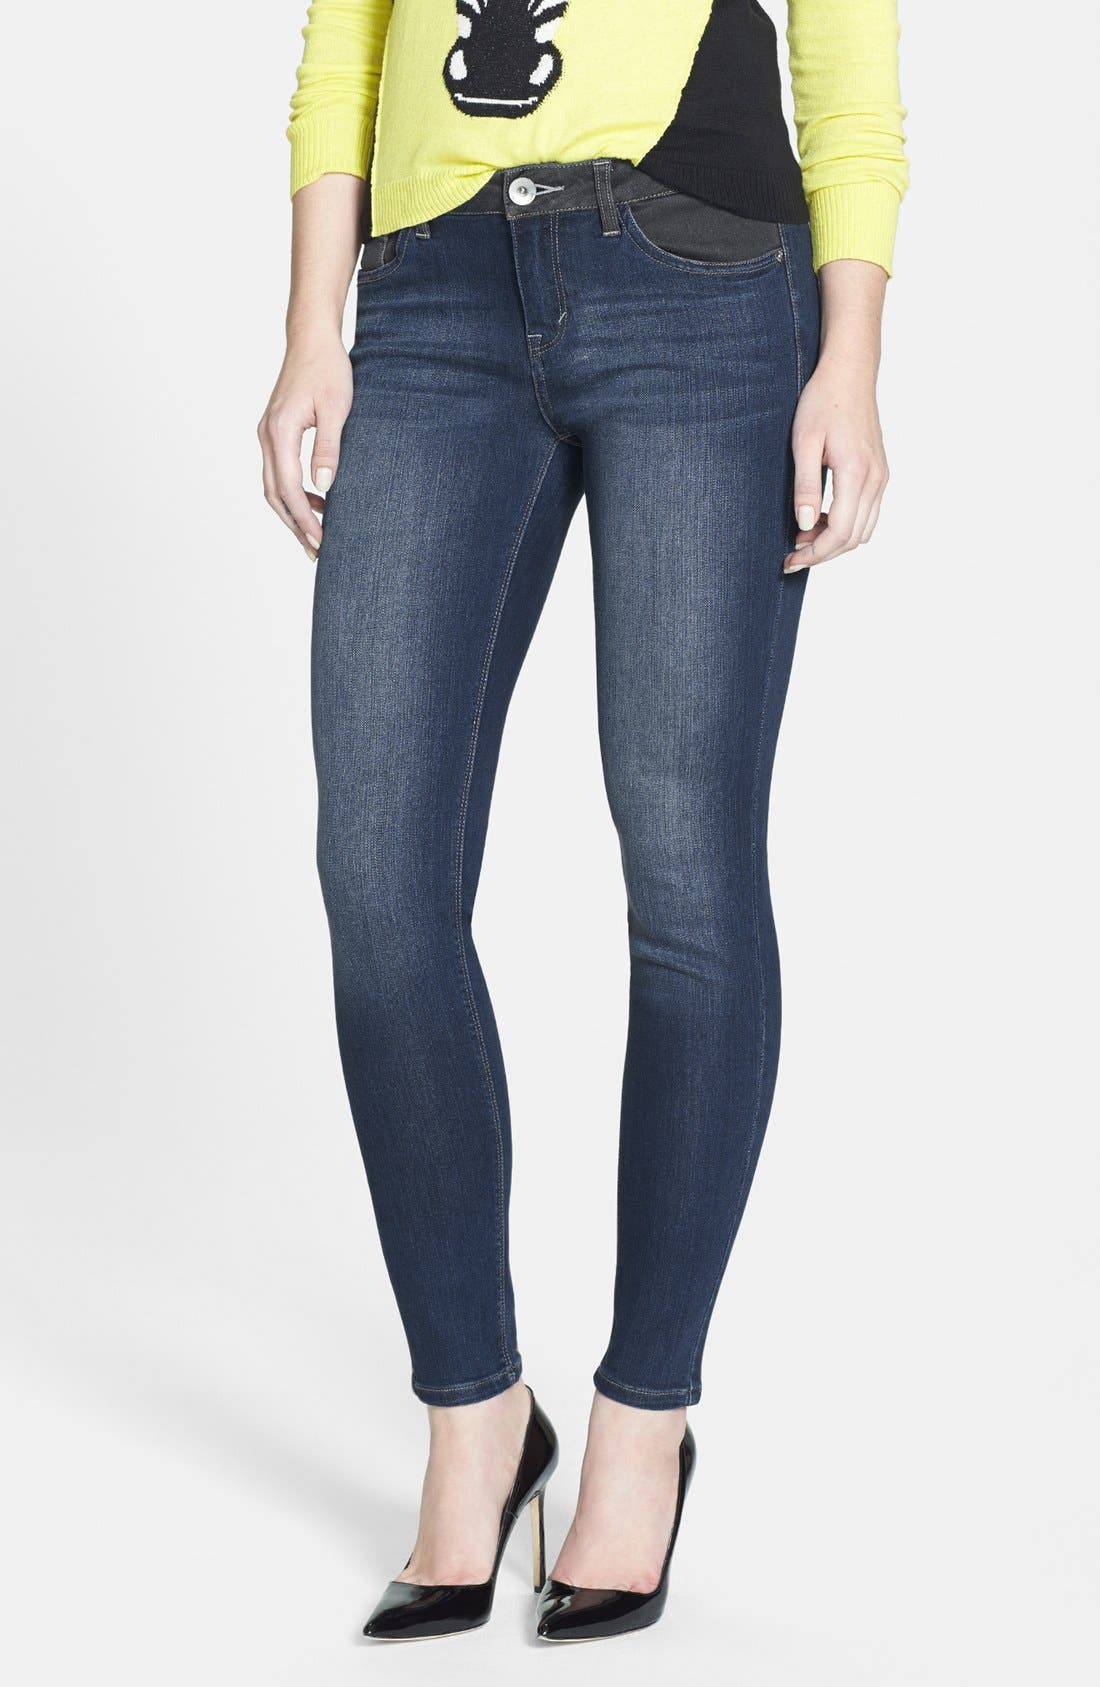 Alternate Image 1 Selected - kensie 'Ankle Biter' Colorblock Skinny Jeans (Electric Youth)